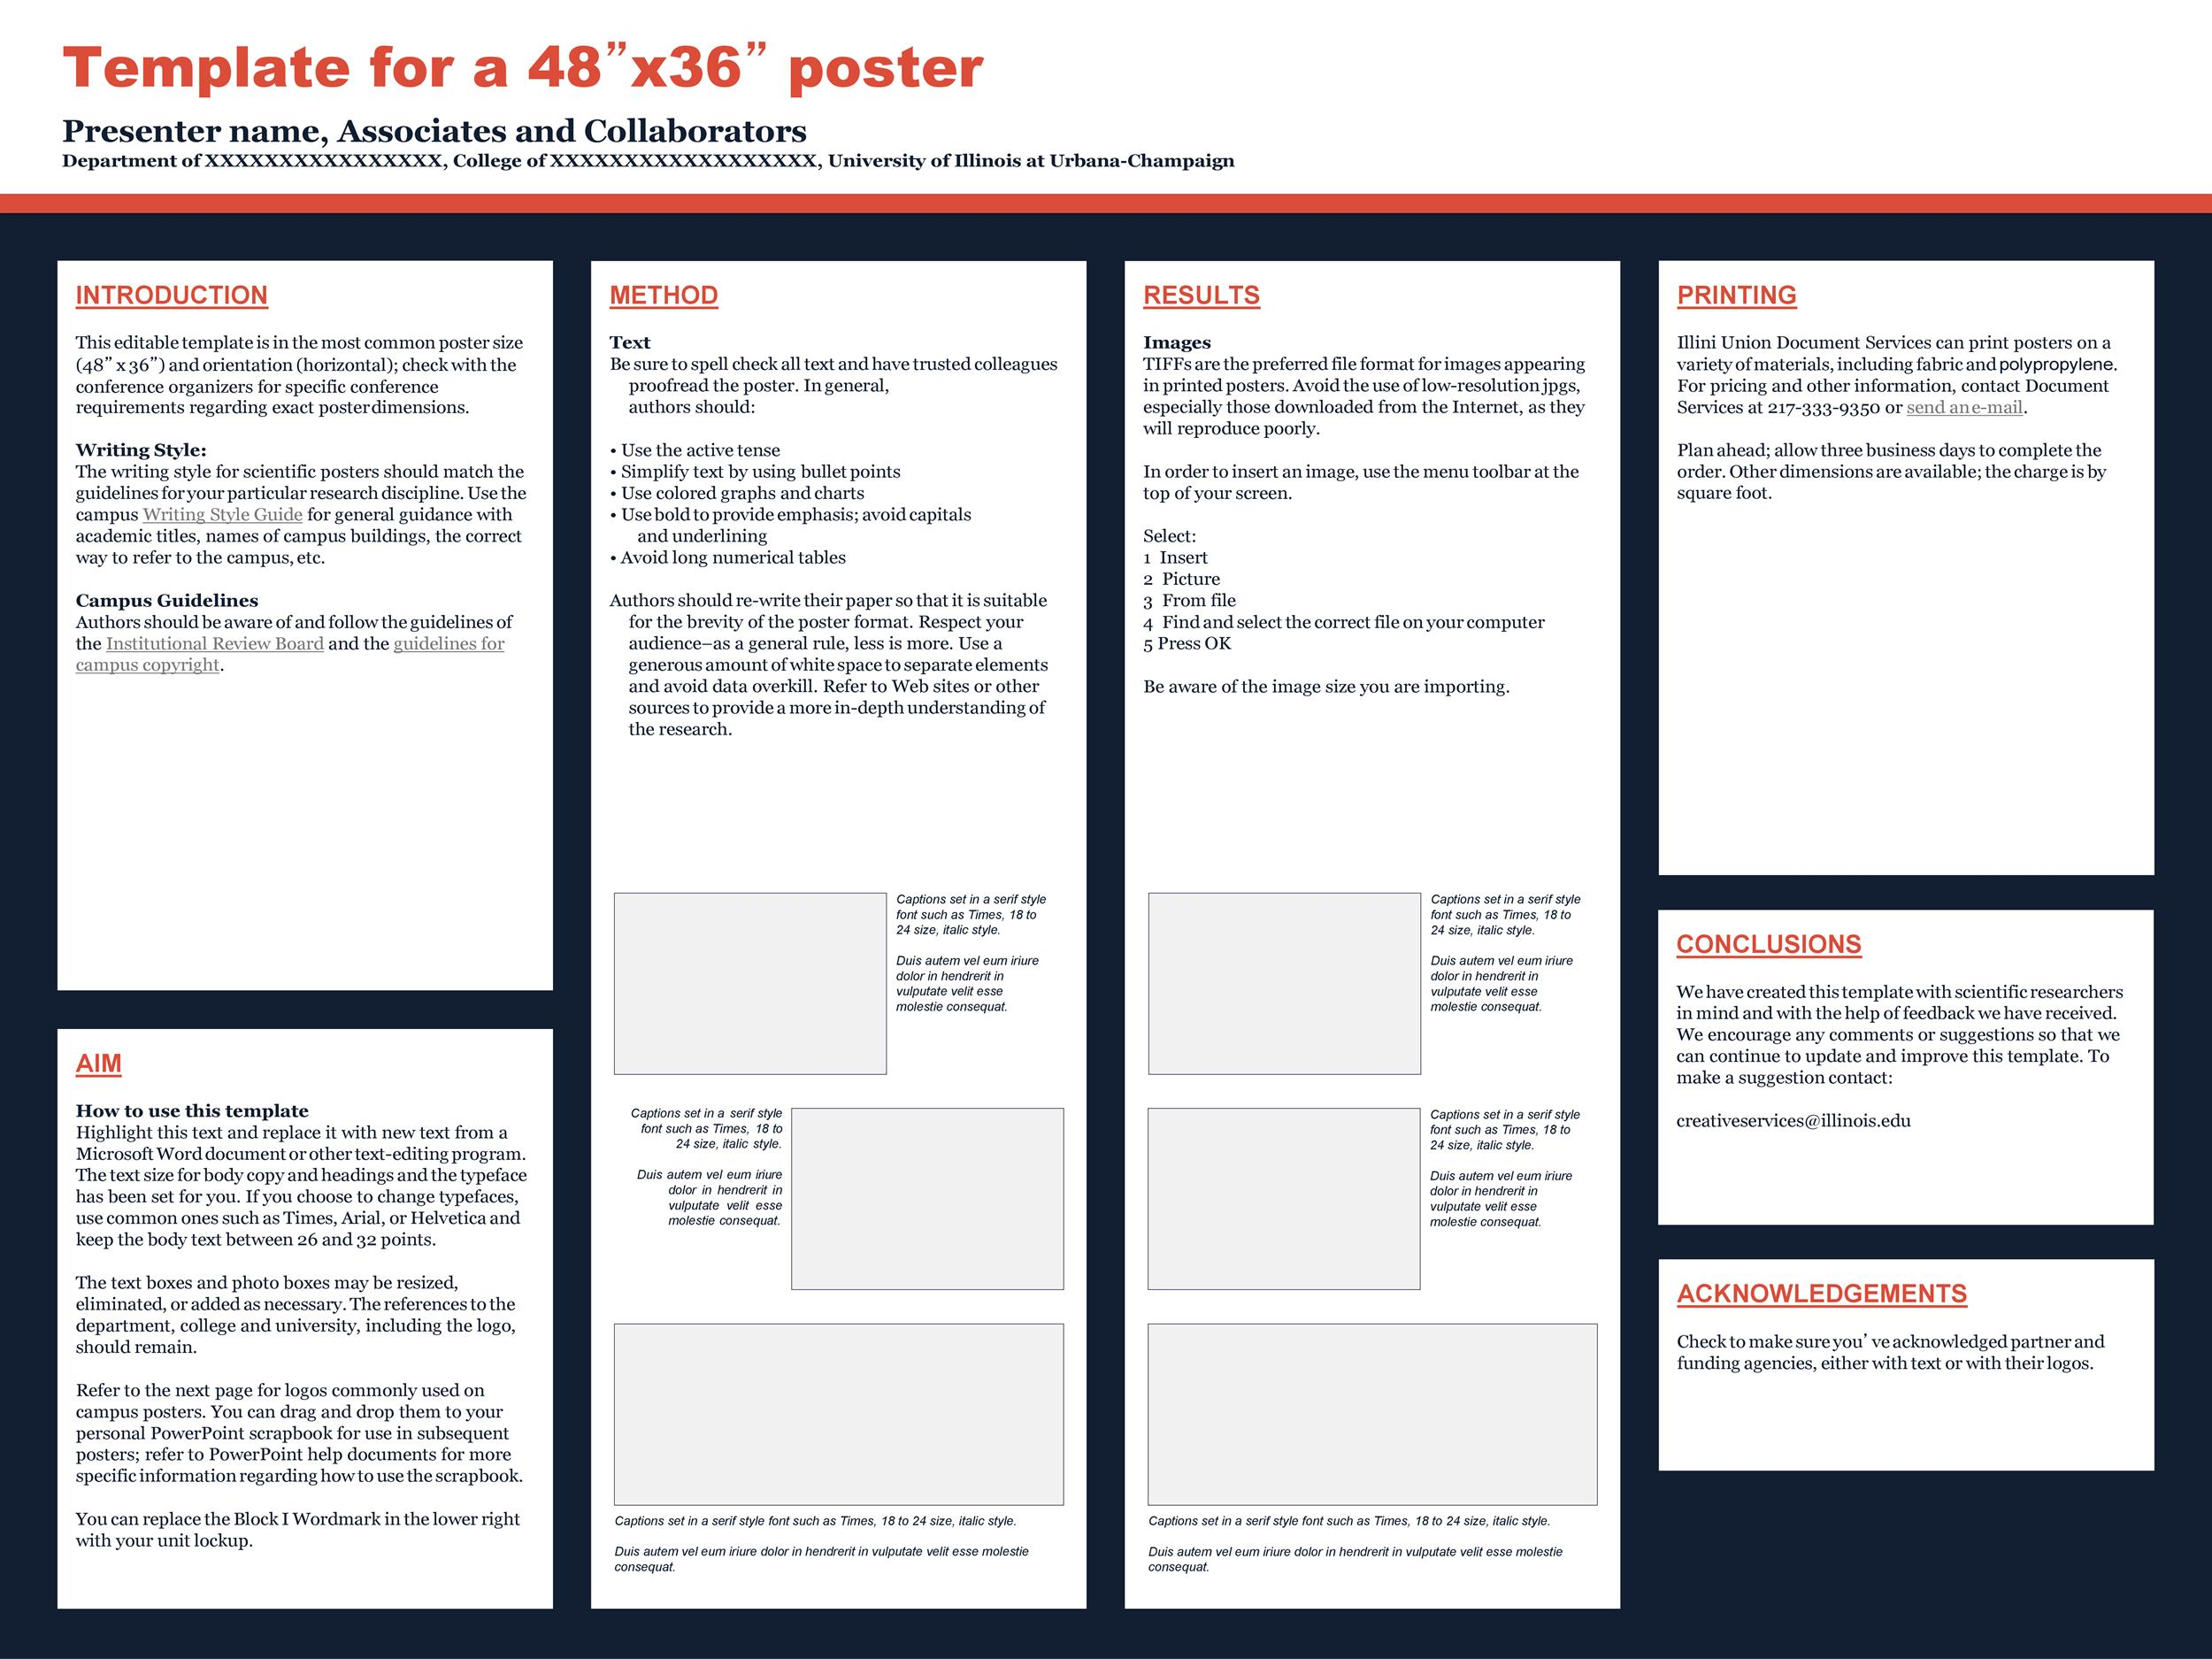 Free research poster template 06